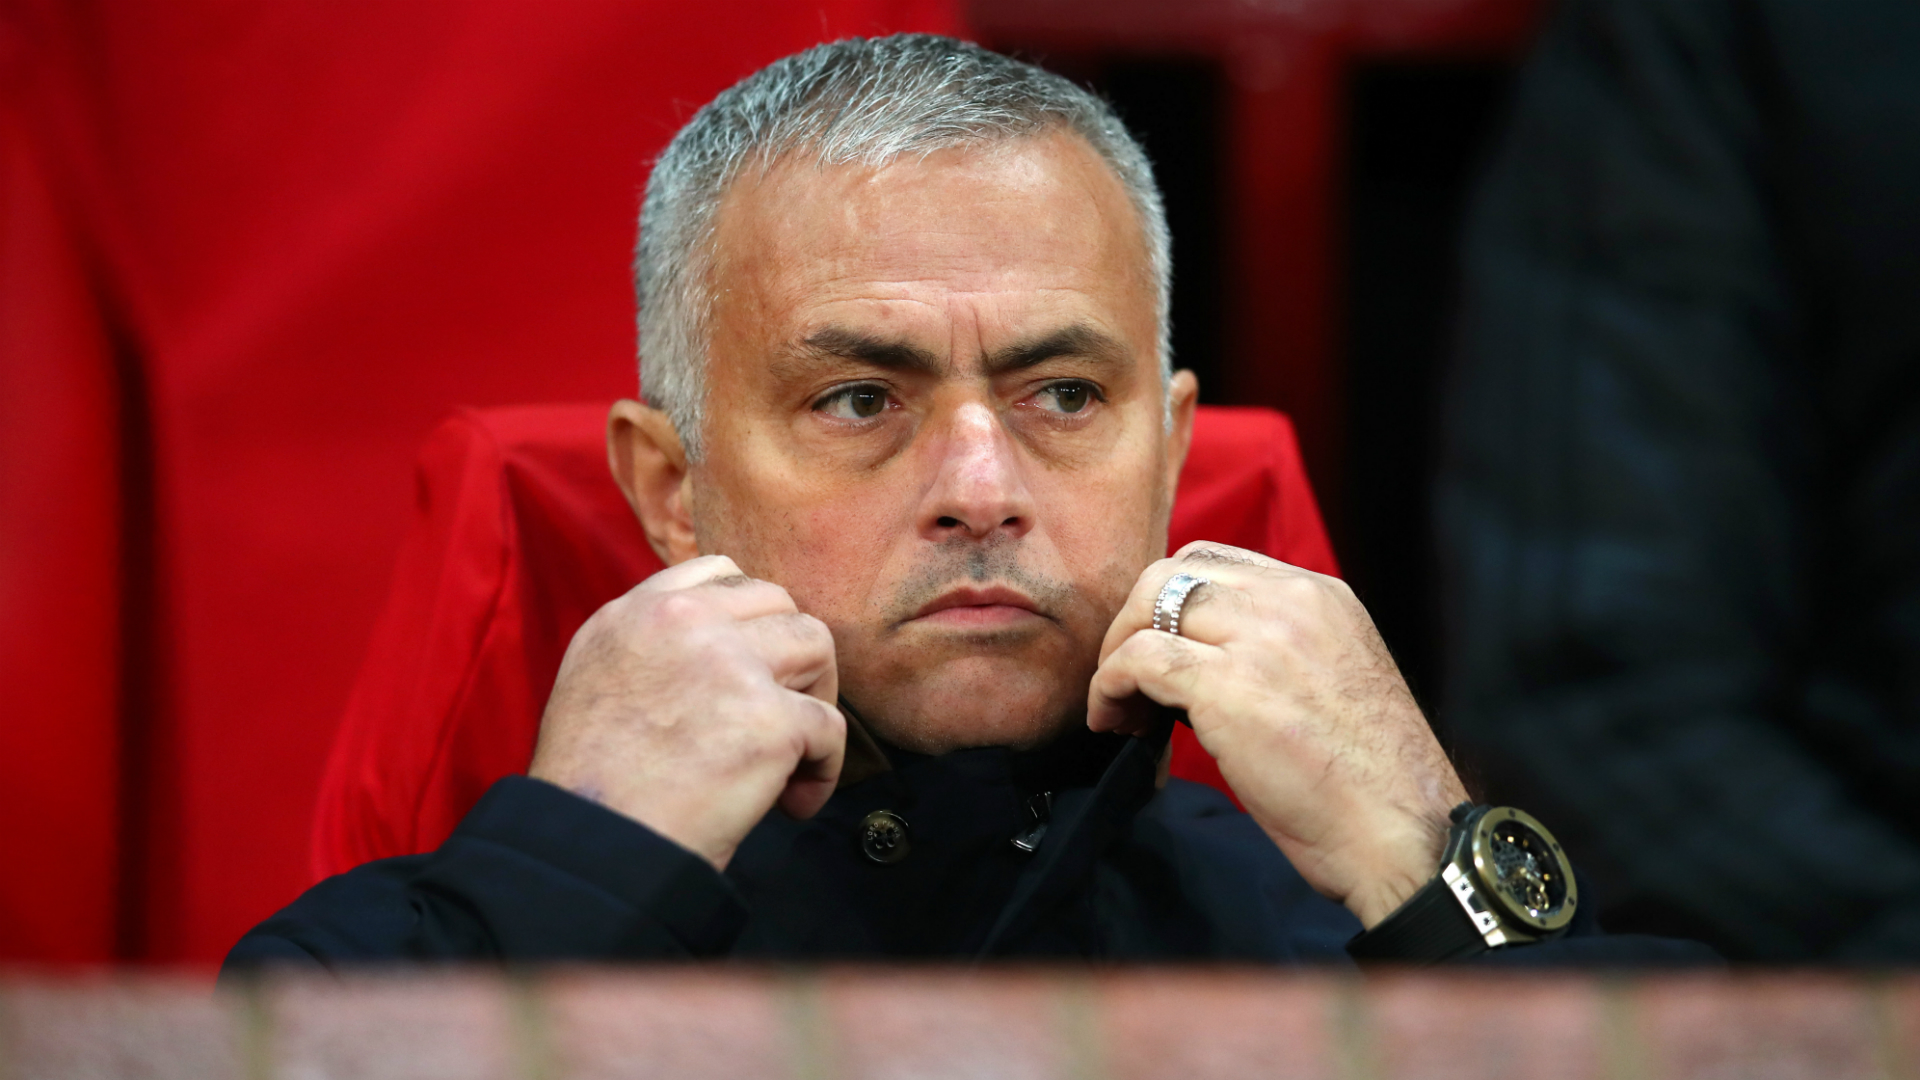 I can't talk about Man United with 'joy and freedom' – Mourinho